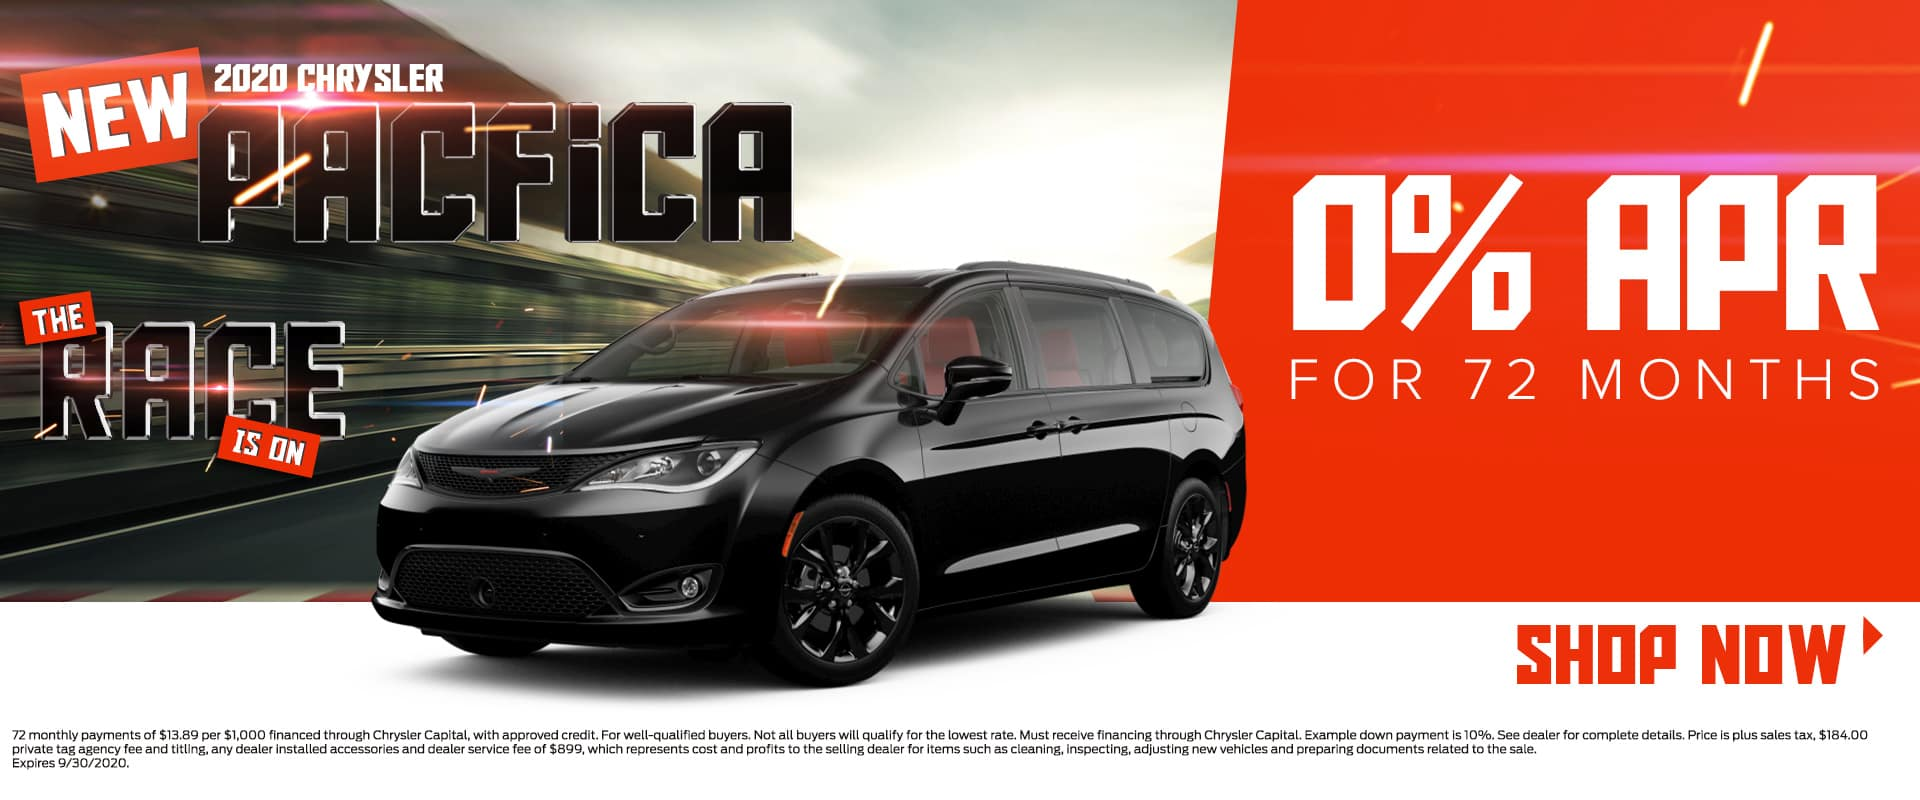 New 2020 Chrysler Pacifica | 0% For 72 Months | The Race Is On